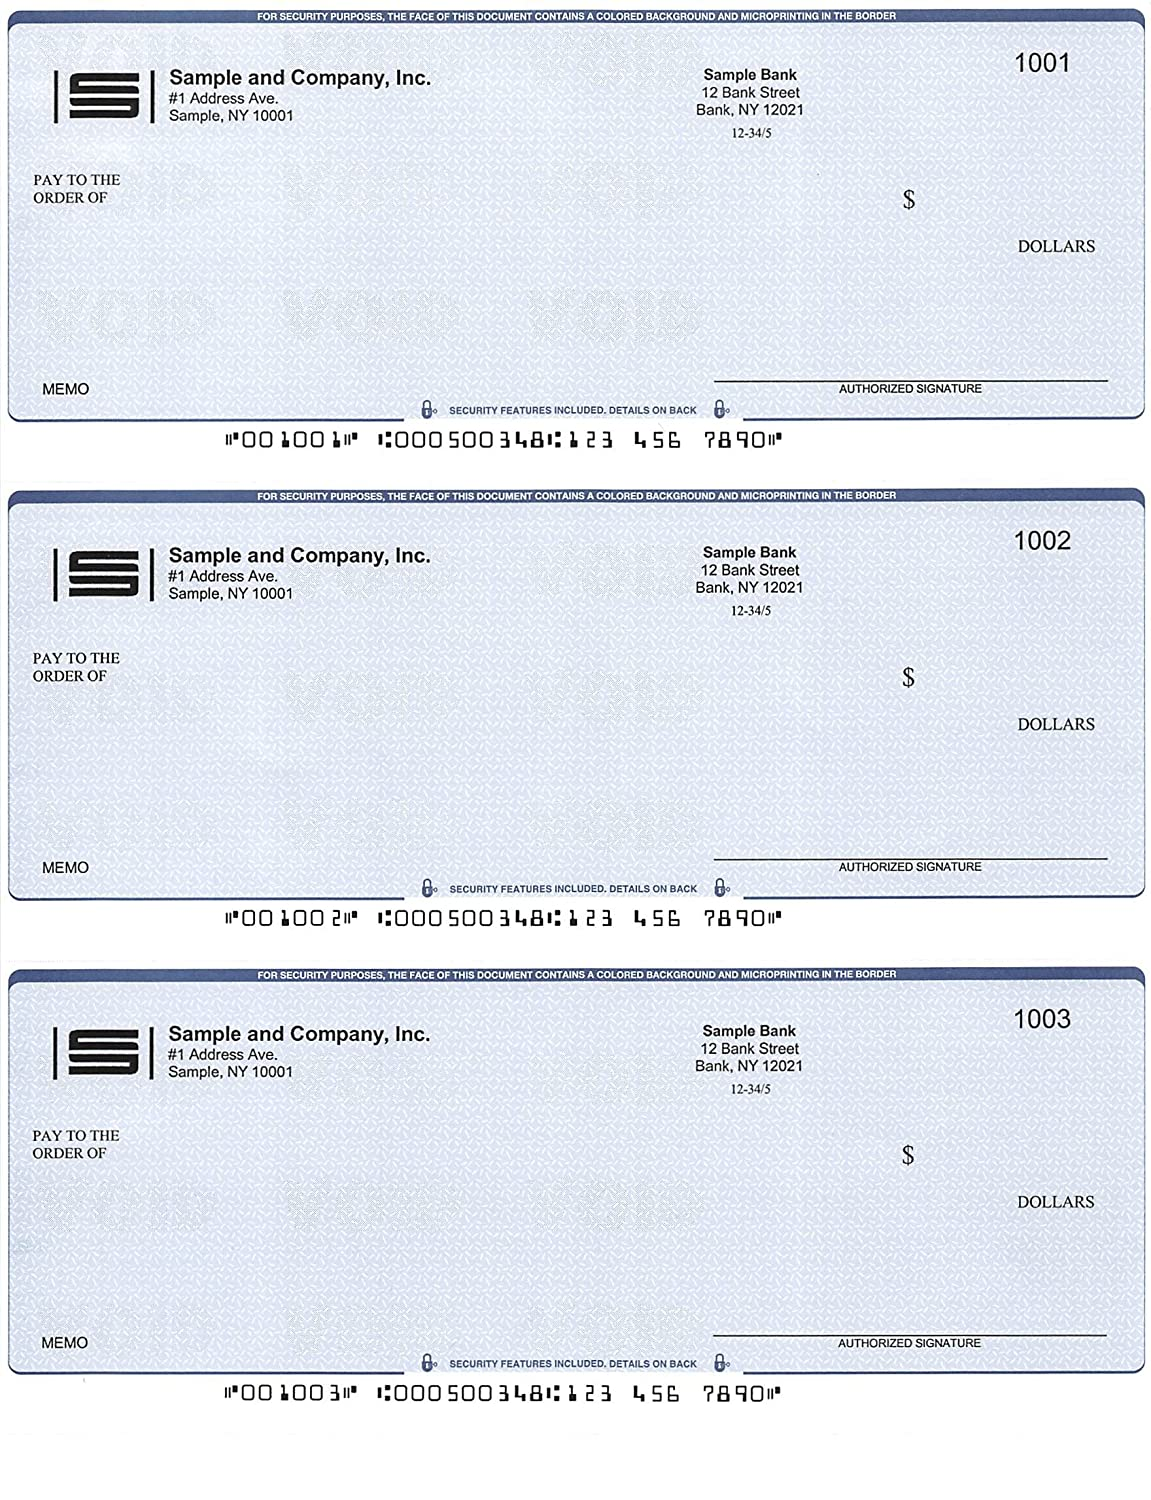 picture about Printable Checks for Quickbooks named Pc Assessments - 300 Posted Computer system Laser Tests - Place of work Common Tests - Suitable for QuickBooks